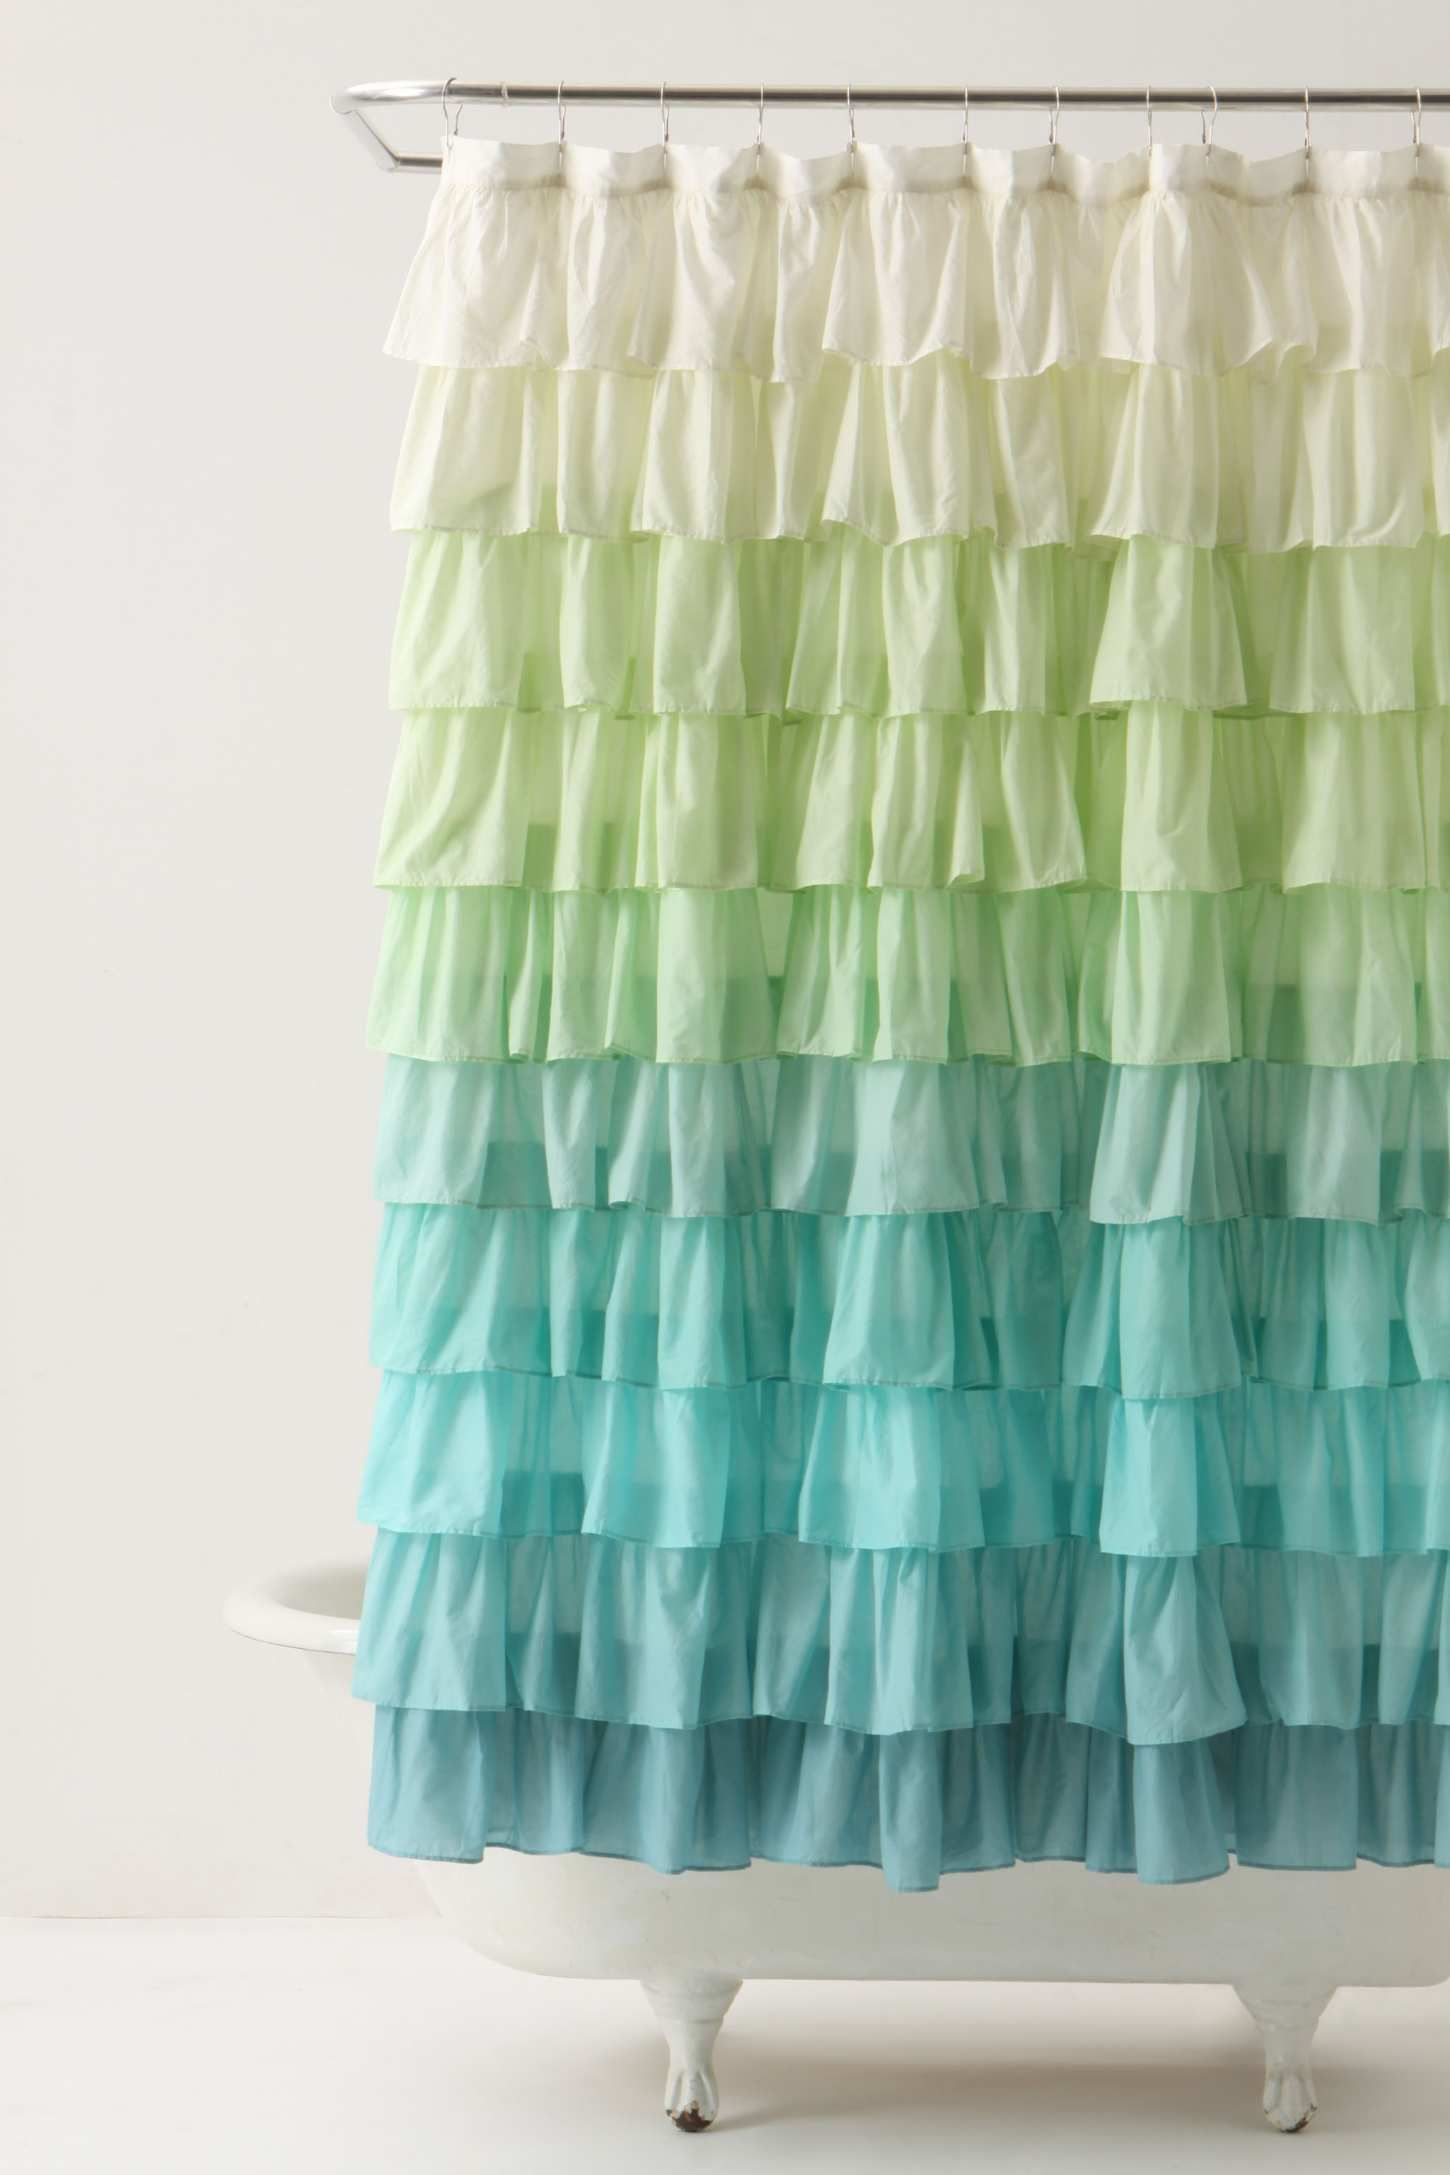 Ombre ruffle curtain - Avery Kleid Mit Stickerei Schwarz Ruffled Shower Curtainseclectic